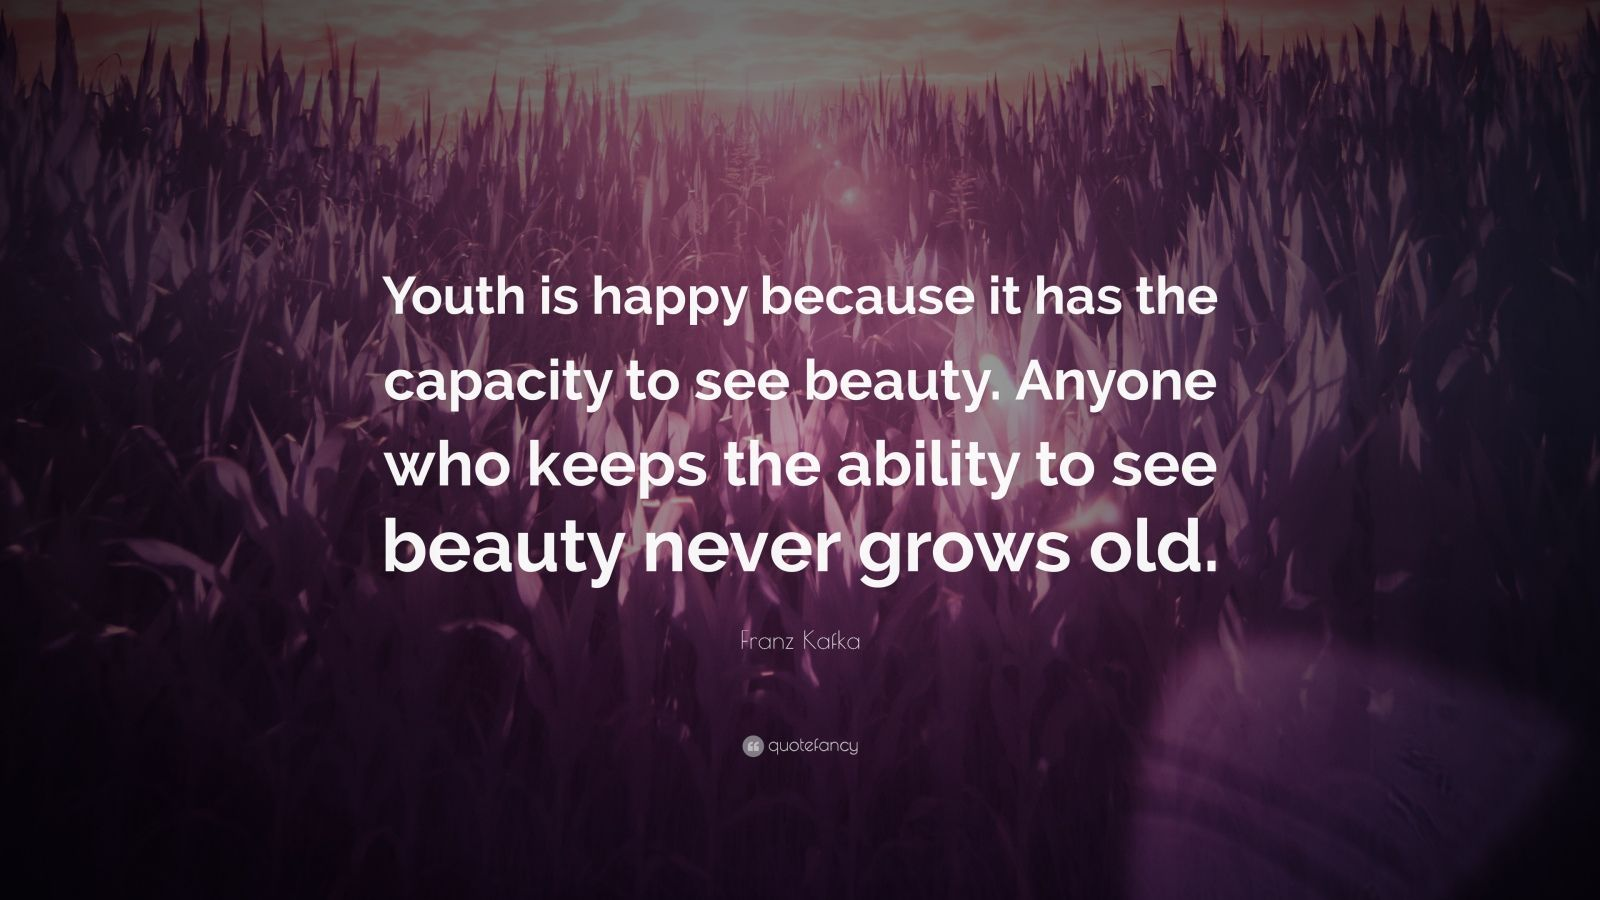 """Franz Kafka Quote: """"Youth is happy because it has the capacity to see beauty. Anyone who keeps the ability to see beauty never grows old."""""""